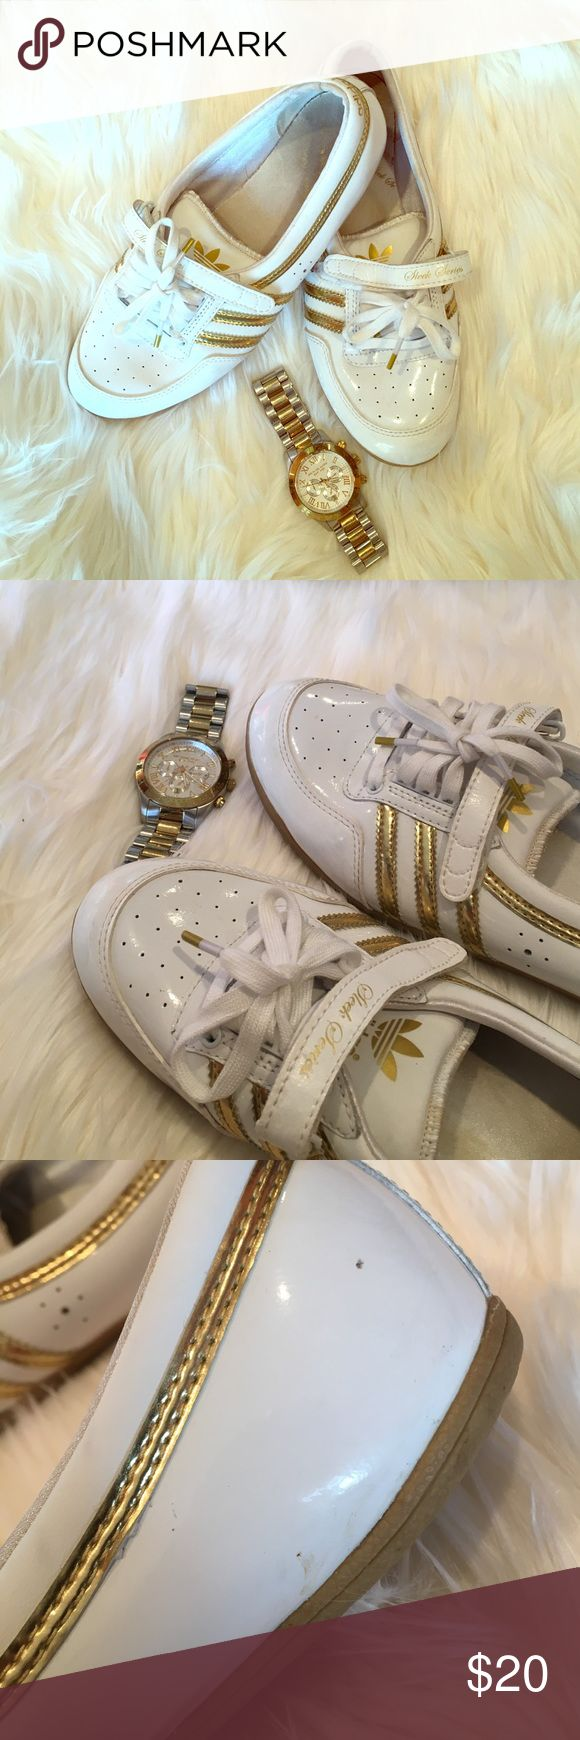 White and Gold Adidas Sleek Series Adidas Sleek Series, white and gold! They have a few scuffs (pictured) but they are hardly noticeable on. They tie but also have a fun velcro strap (hello throwback!) super fun shoes for golf or tennis or really any day 💁🏻 Adidas Shoes Sneakers